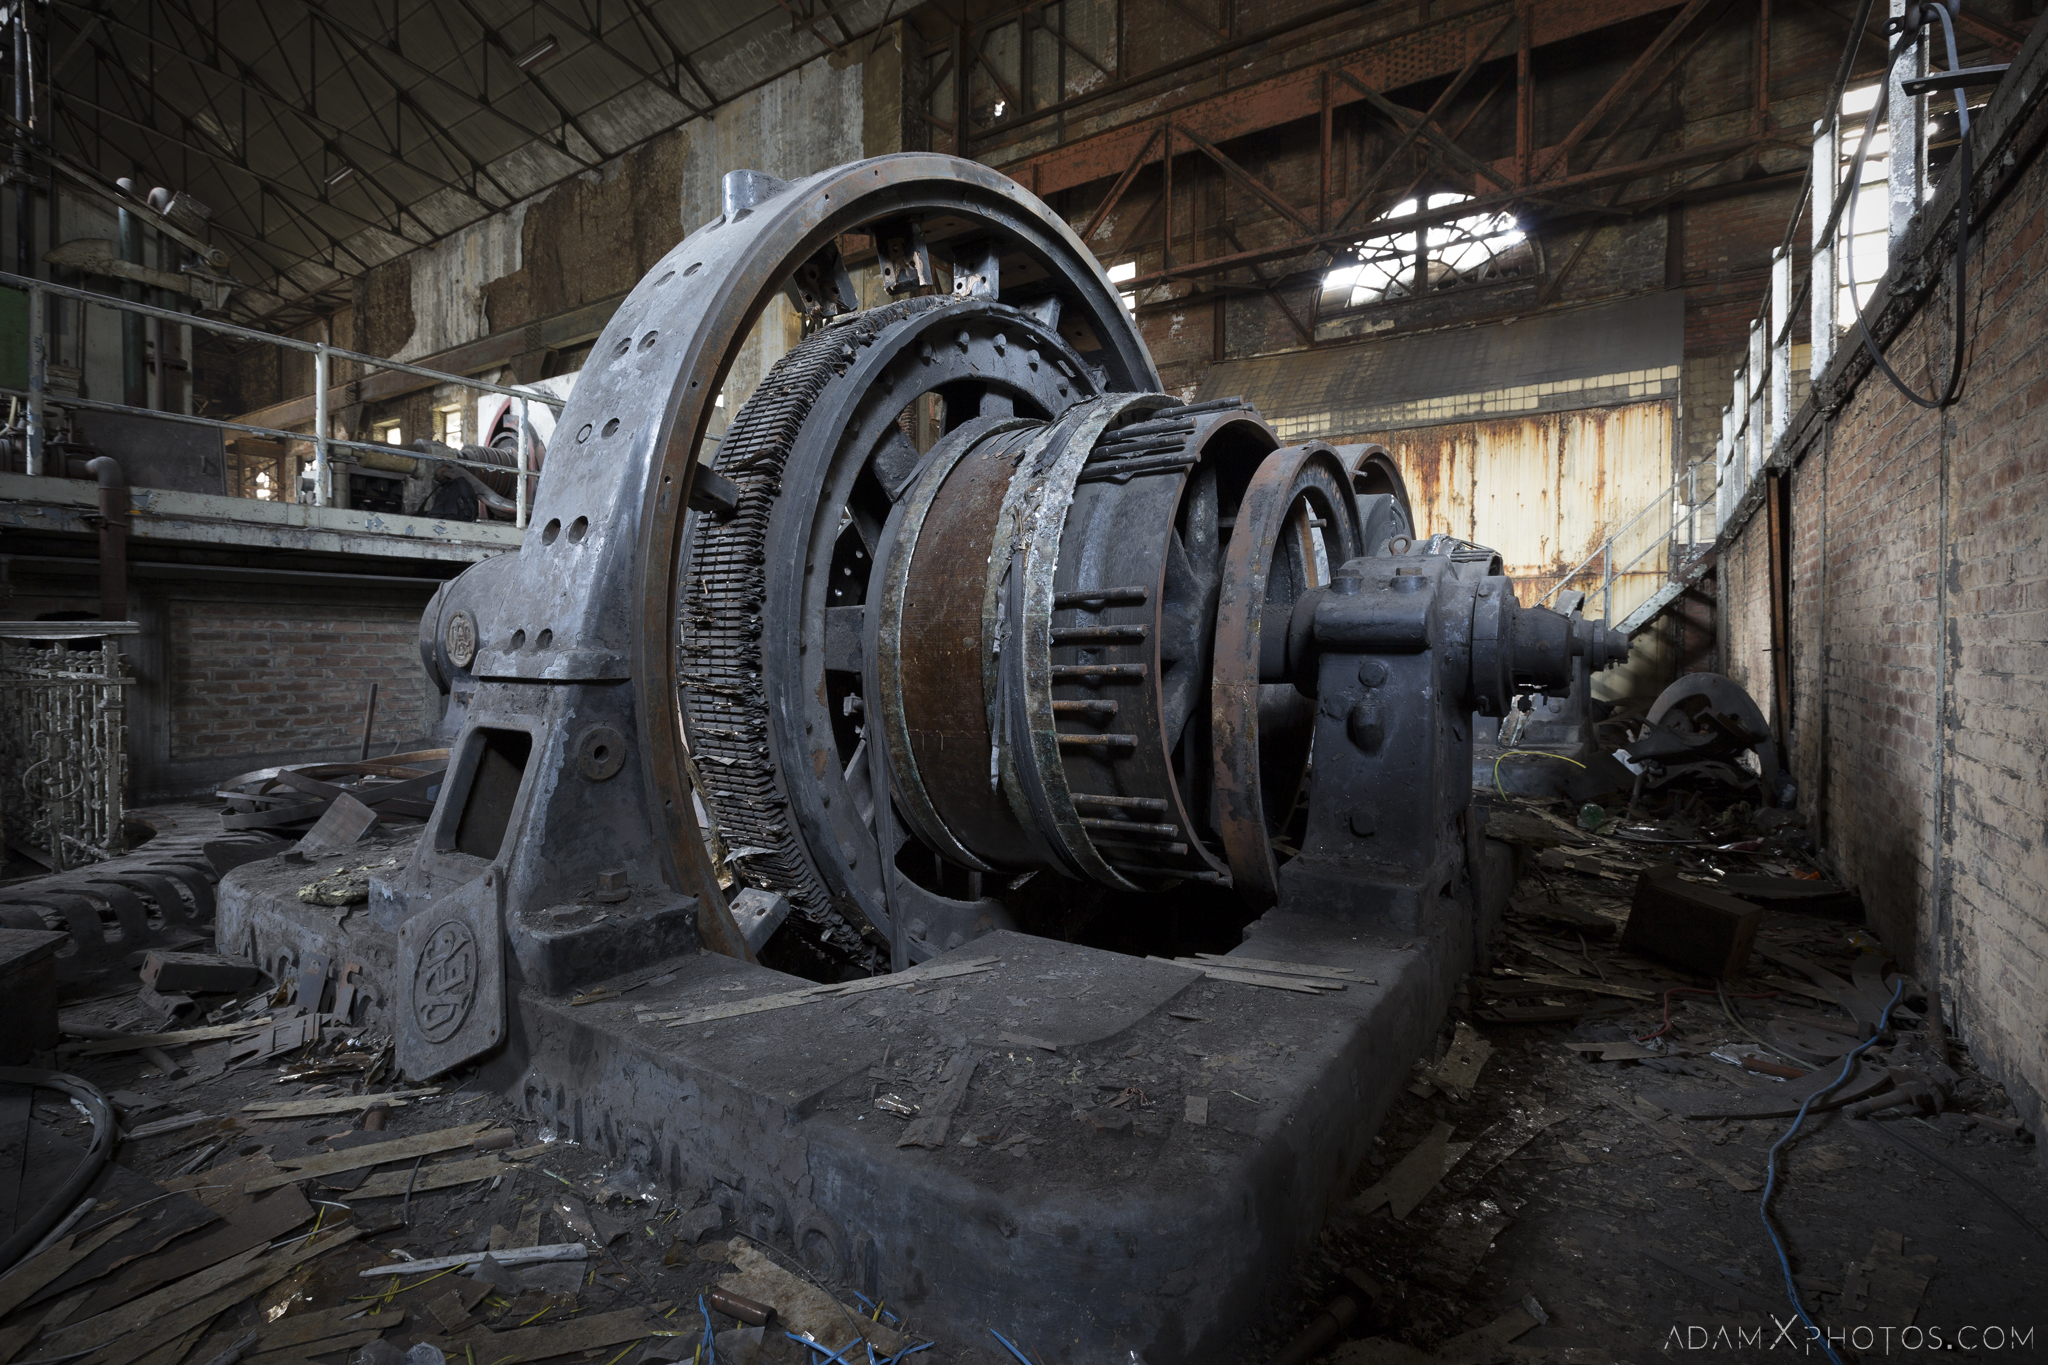 Rotary converter detail HF4 power plant wet dogs AMEC Industrial Industry Adam X Urban Exploration Belgium Access 2017 Abandoned decay lost forgotten derelict location creepy haunting eerie